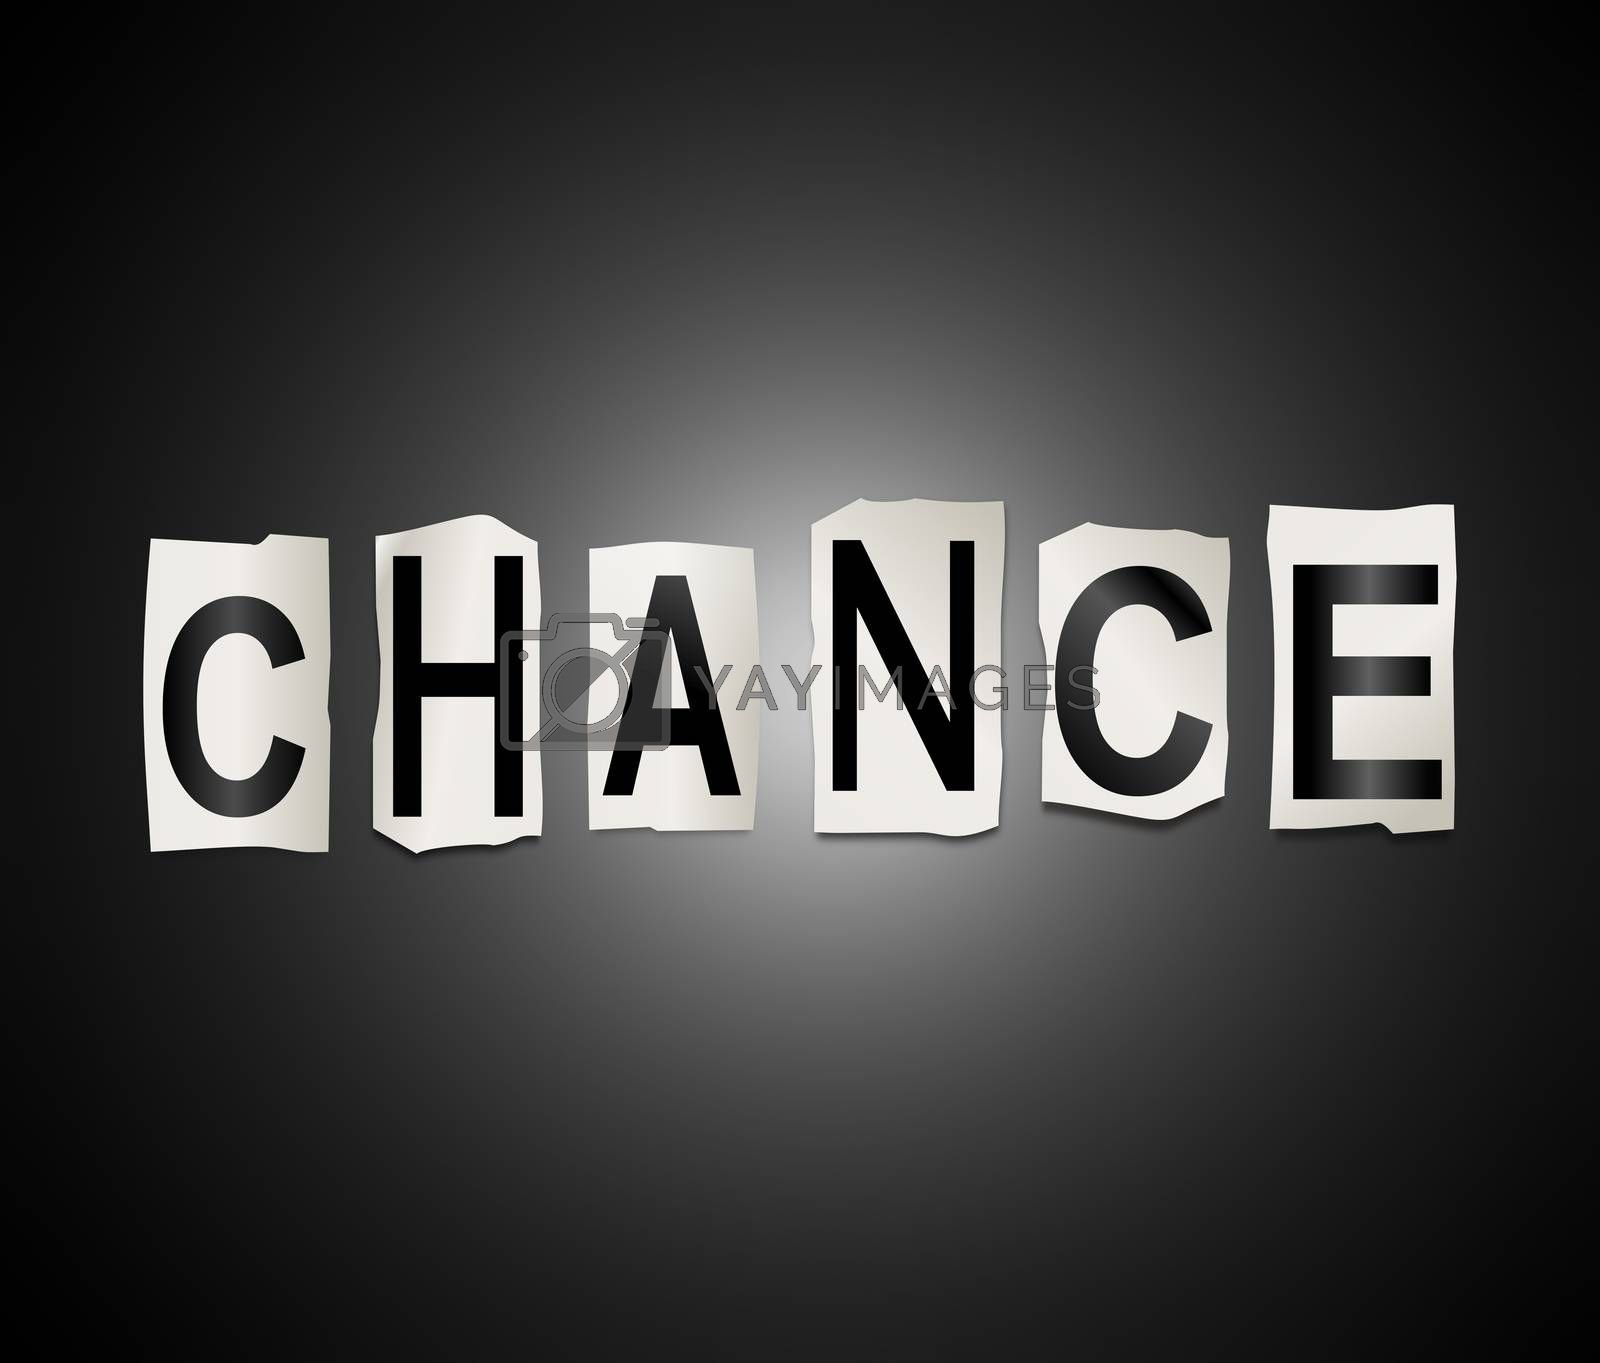 Illustration depicting a set of cut out printed letters arranged to form the word chance.